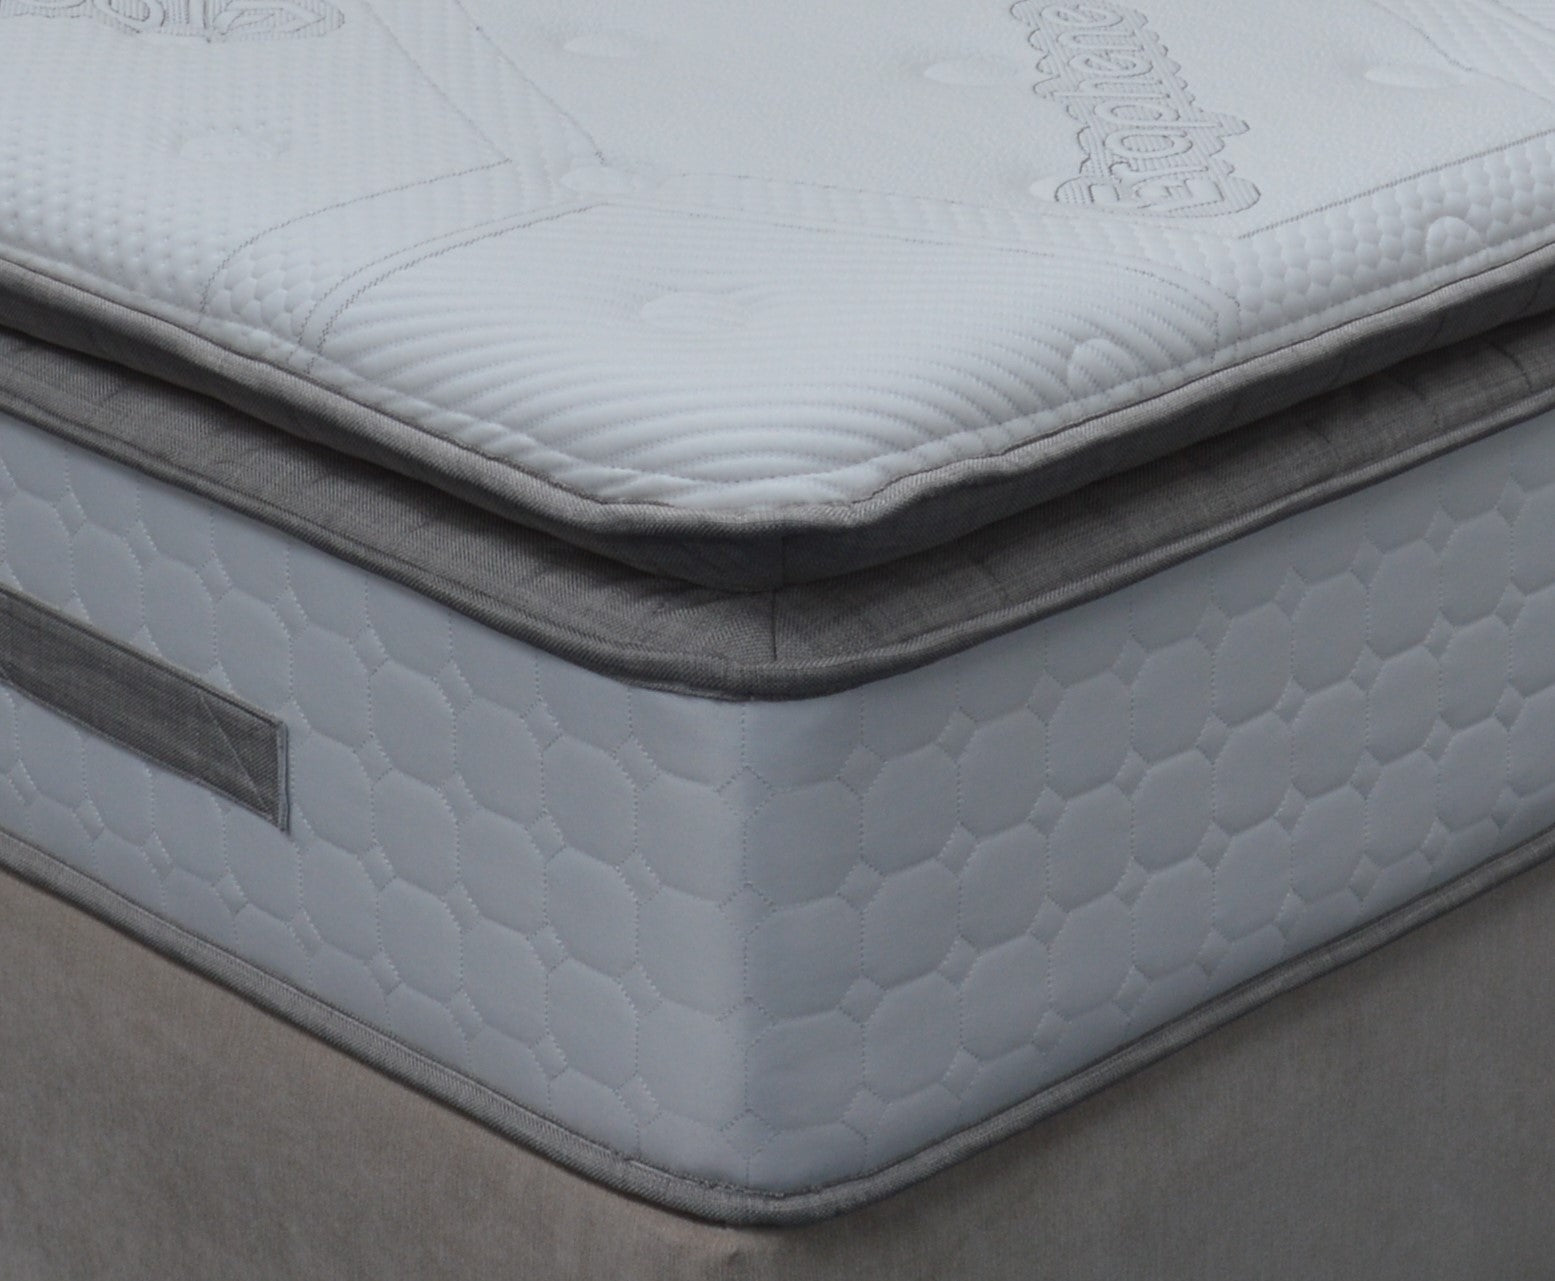 DFI  Graphex   3000  Pocket Sprung Ultra Plush Mattress